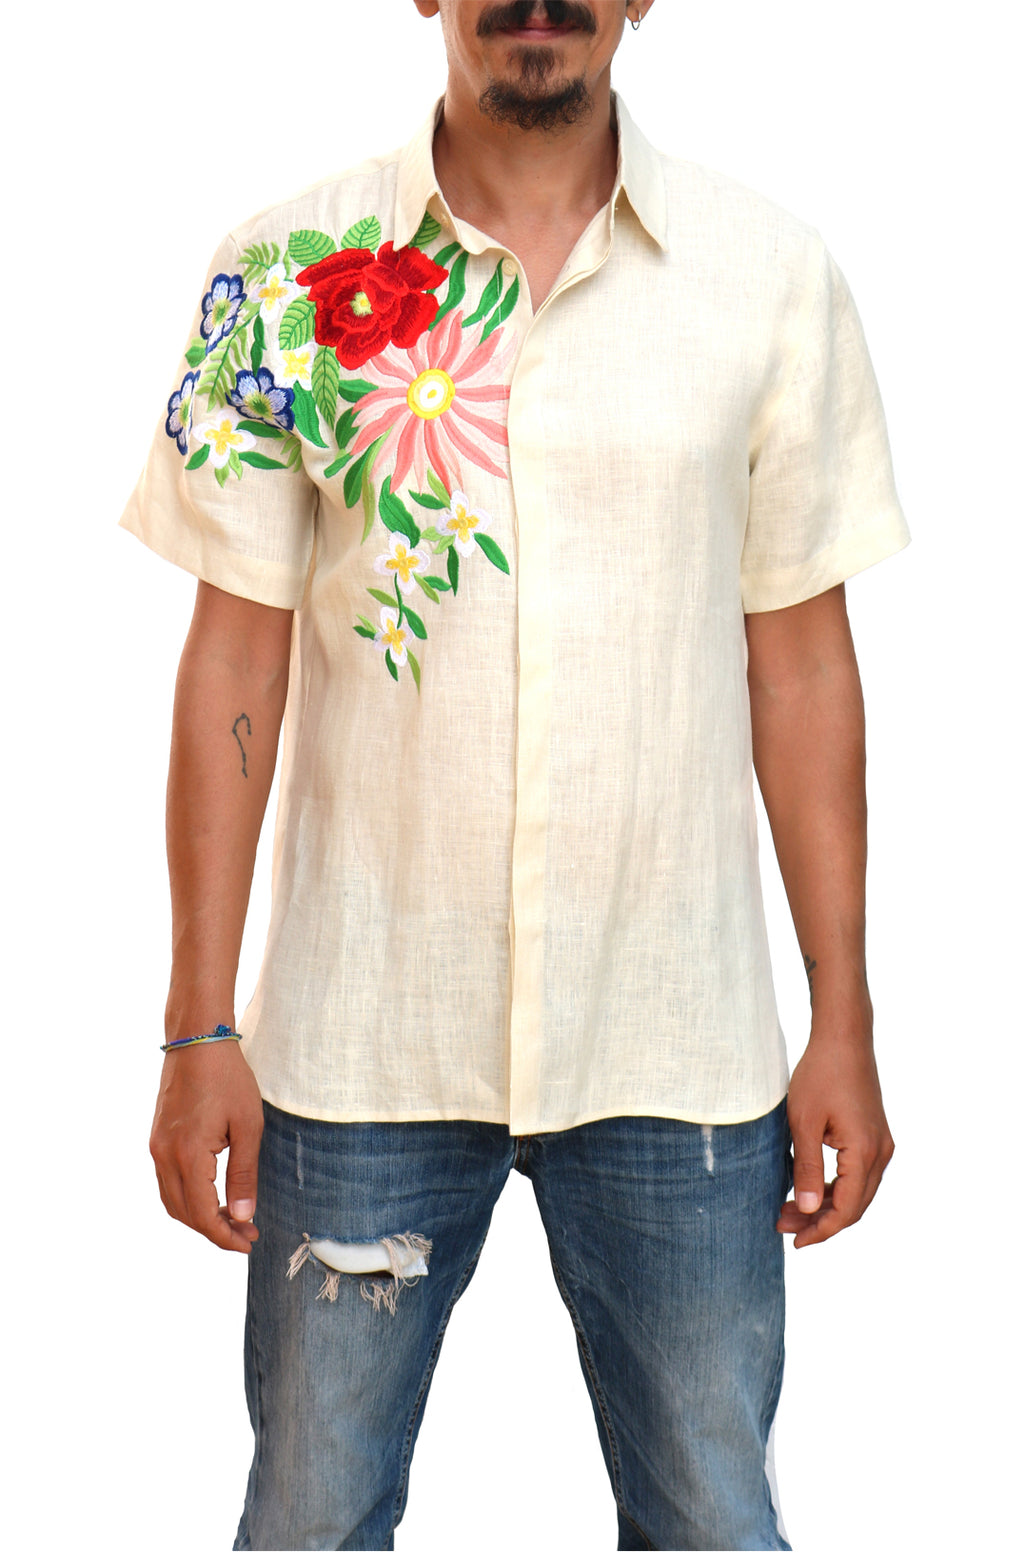 Fanm Mon KREMA Cream Linen Men Shirt Rose Embroidery